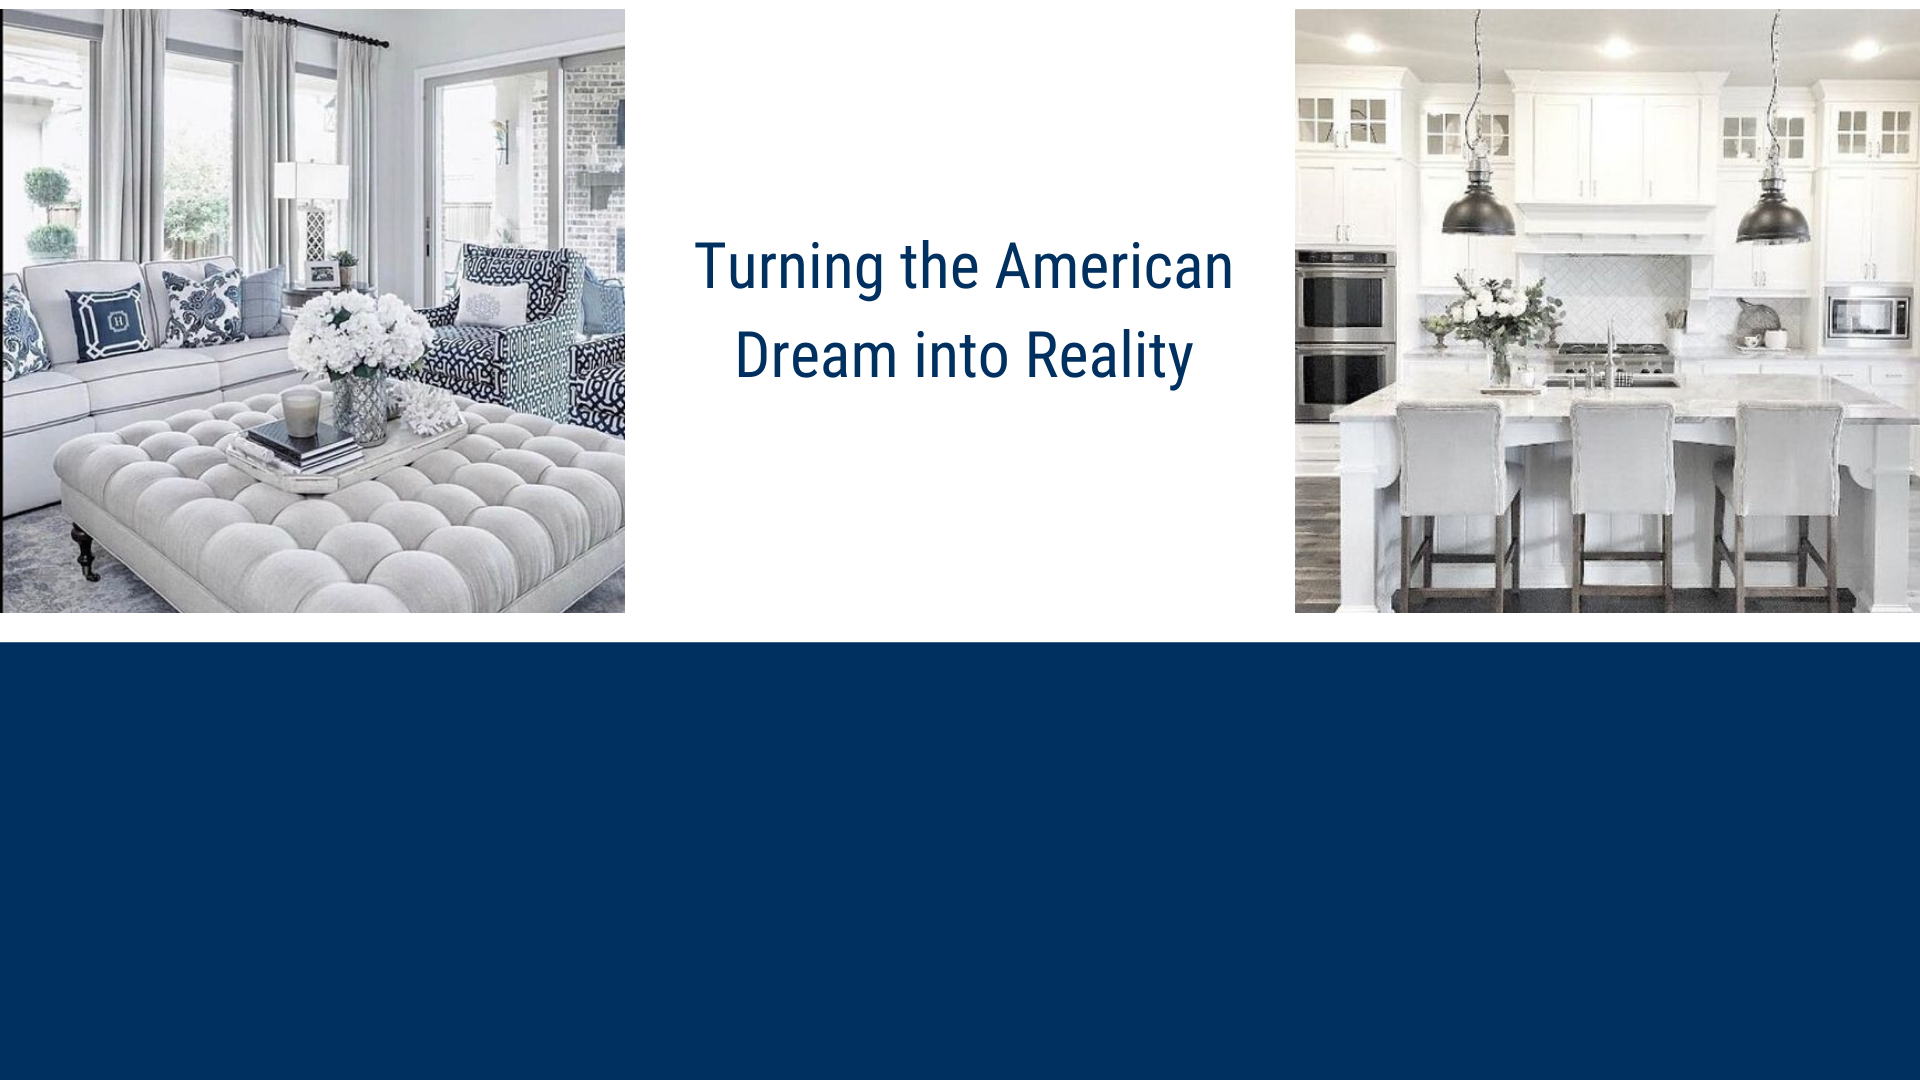 Turning the American Dream into Reality